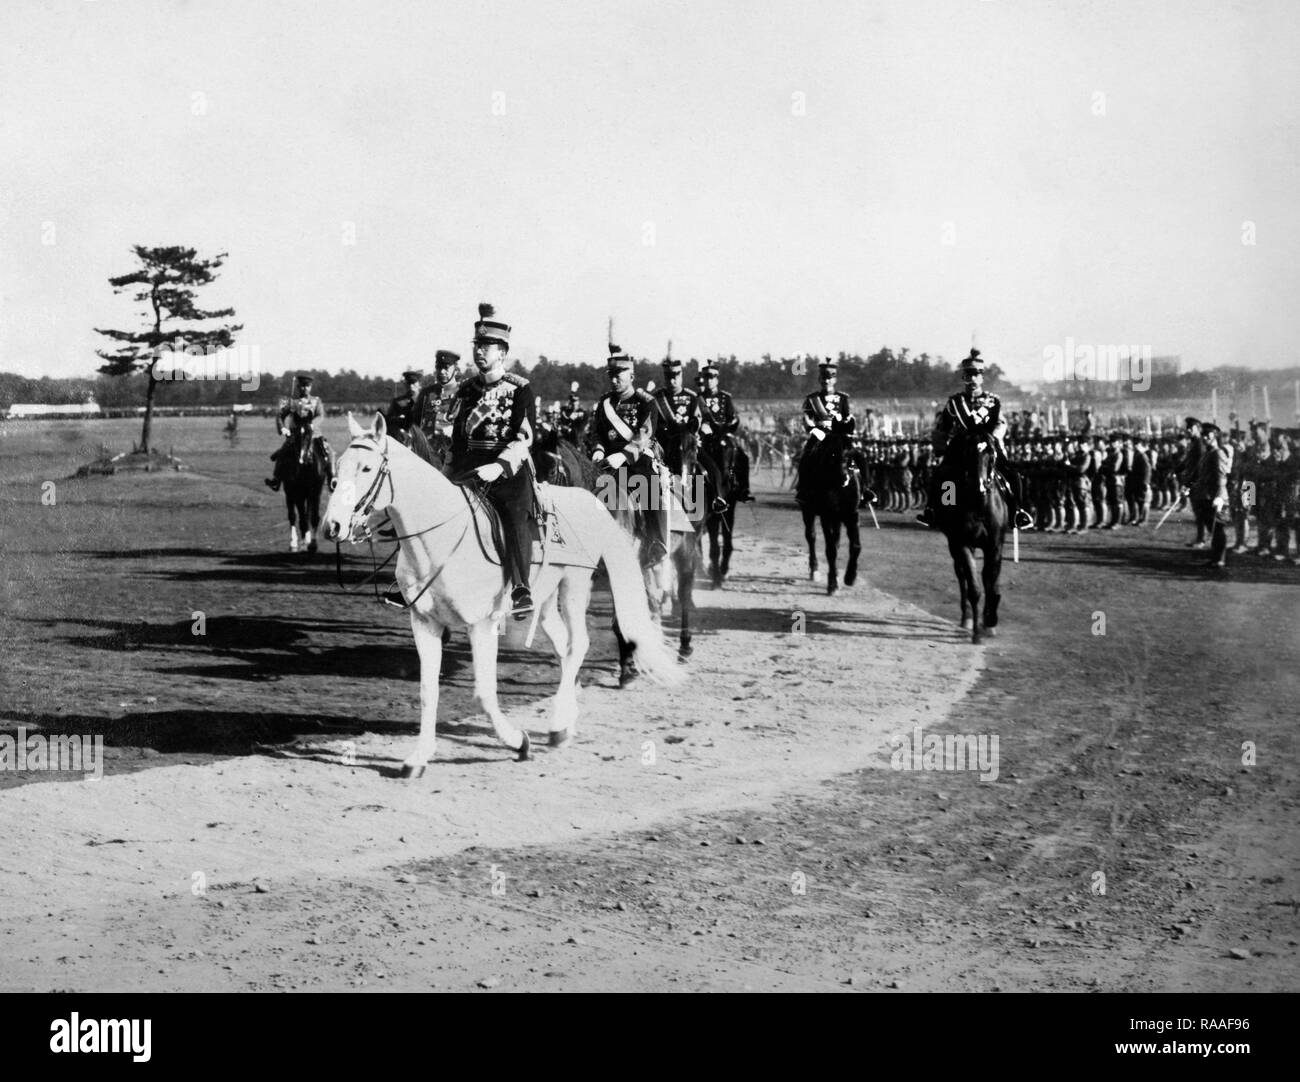 Japanese Emperor Hirohito reviews troops aboard his imperial stallion Shirayuki, ca. 1933. - Stock Image